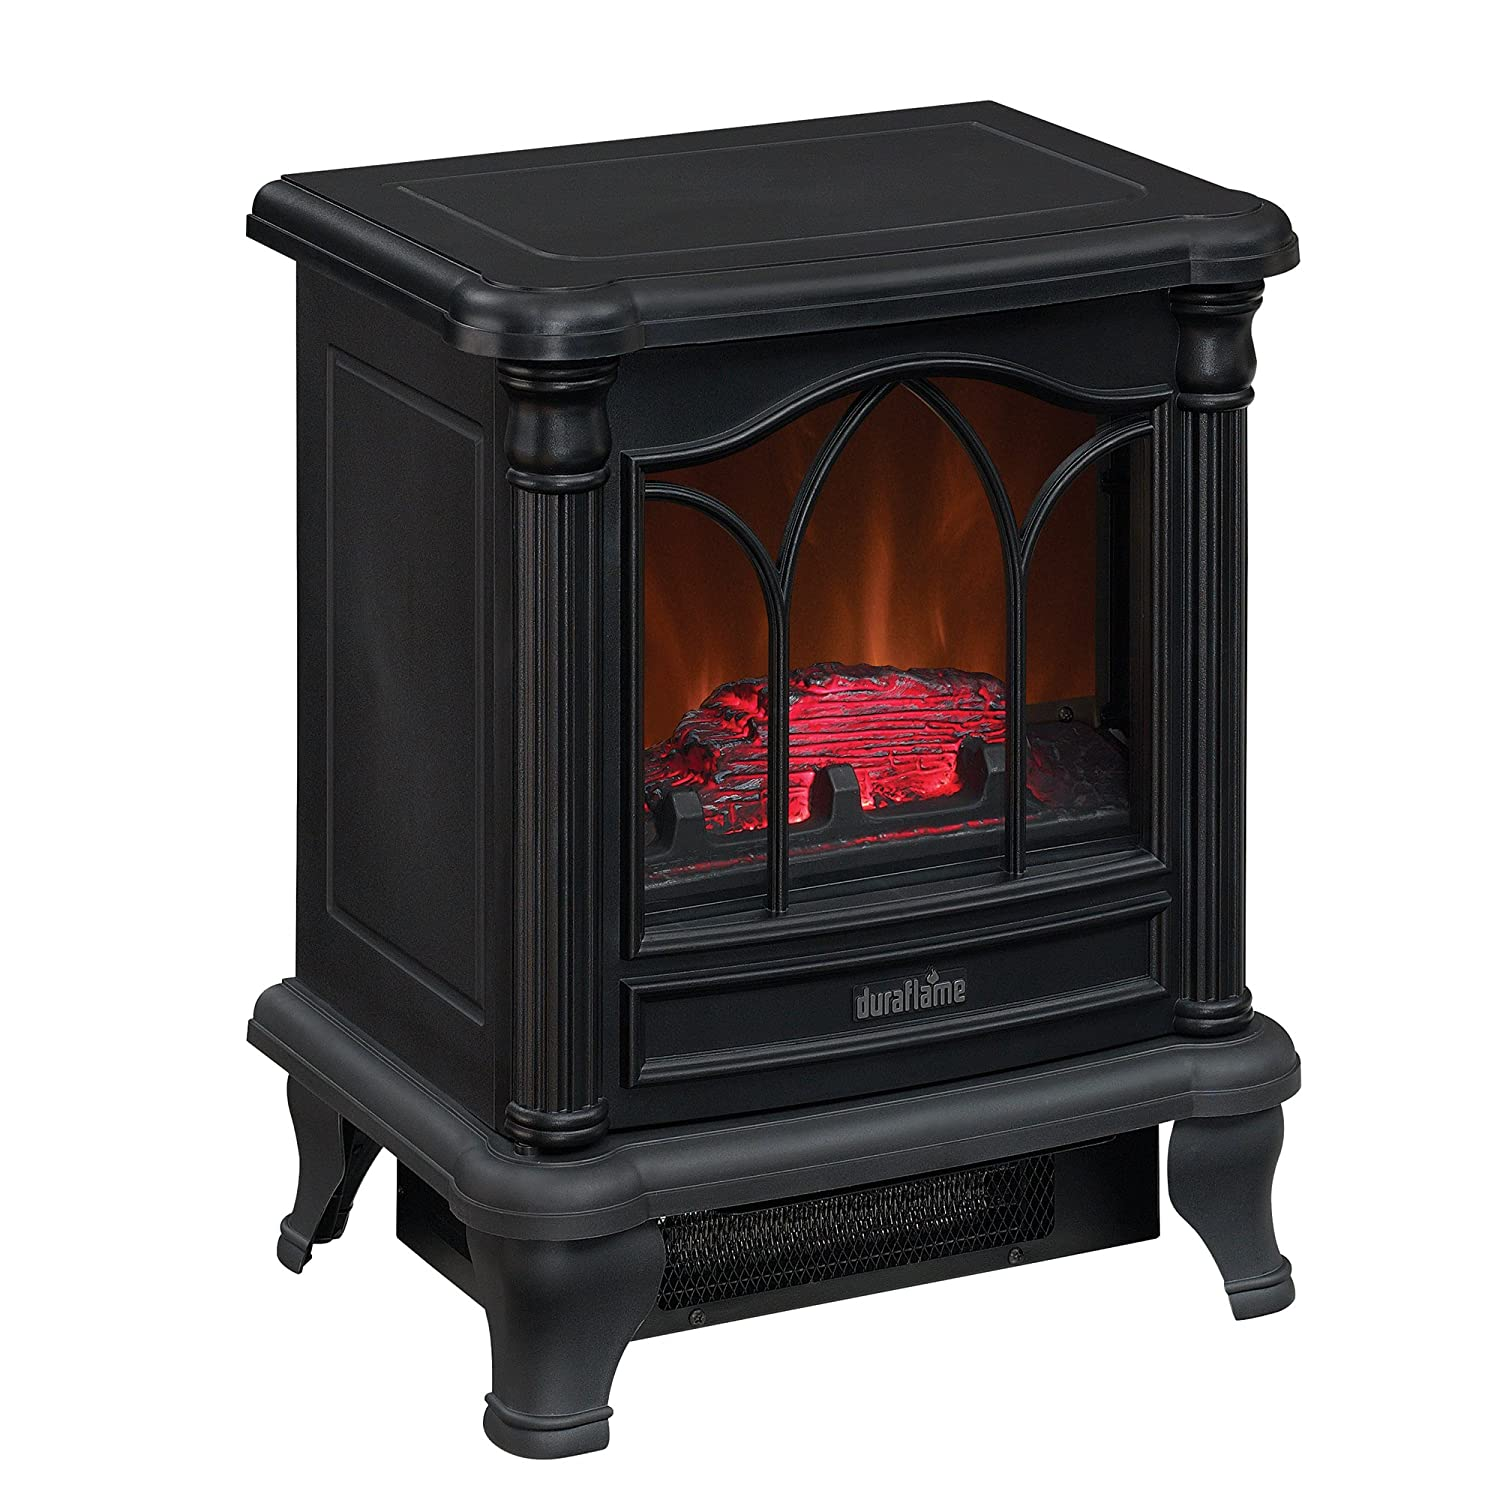 Amazon.com: Duraflame DFS-450-2 Carleton Electric Stove with Heater, Black:  Home & Kitchen